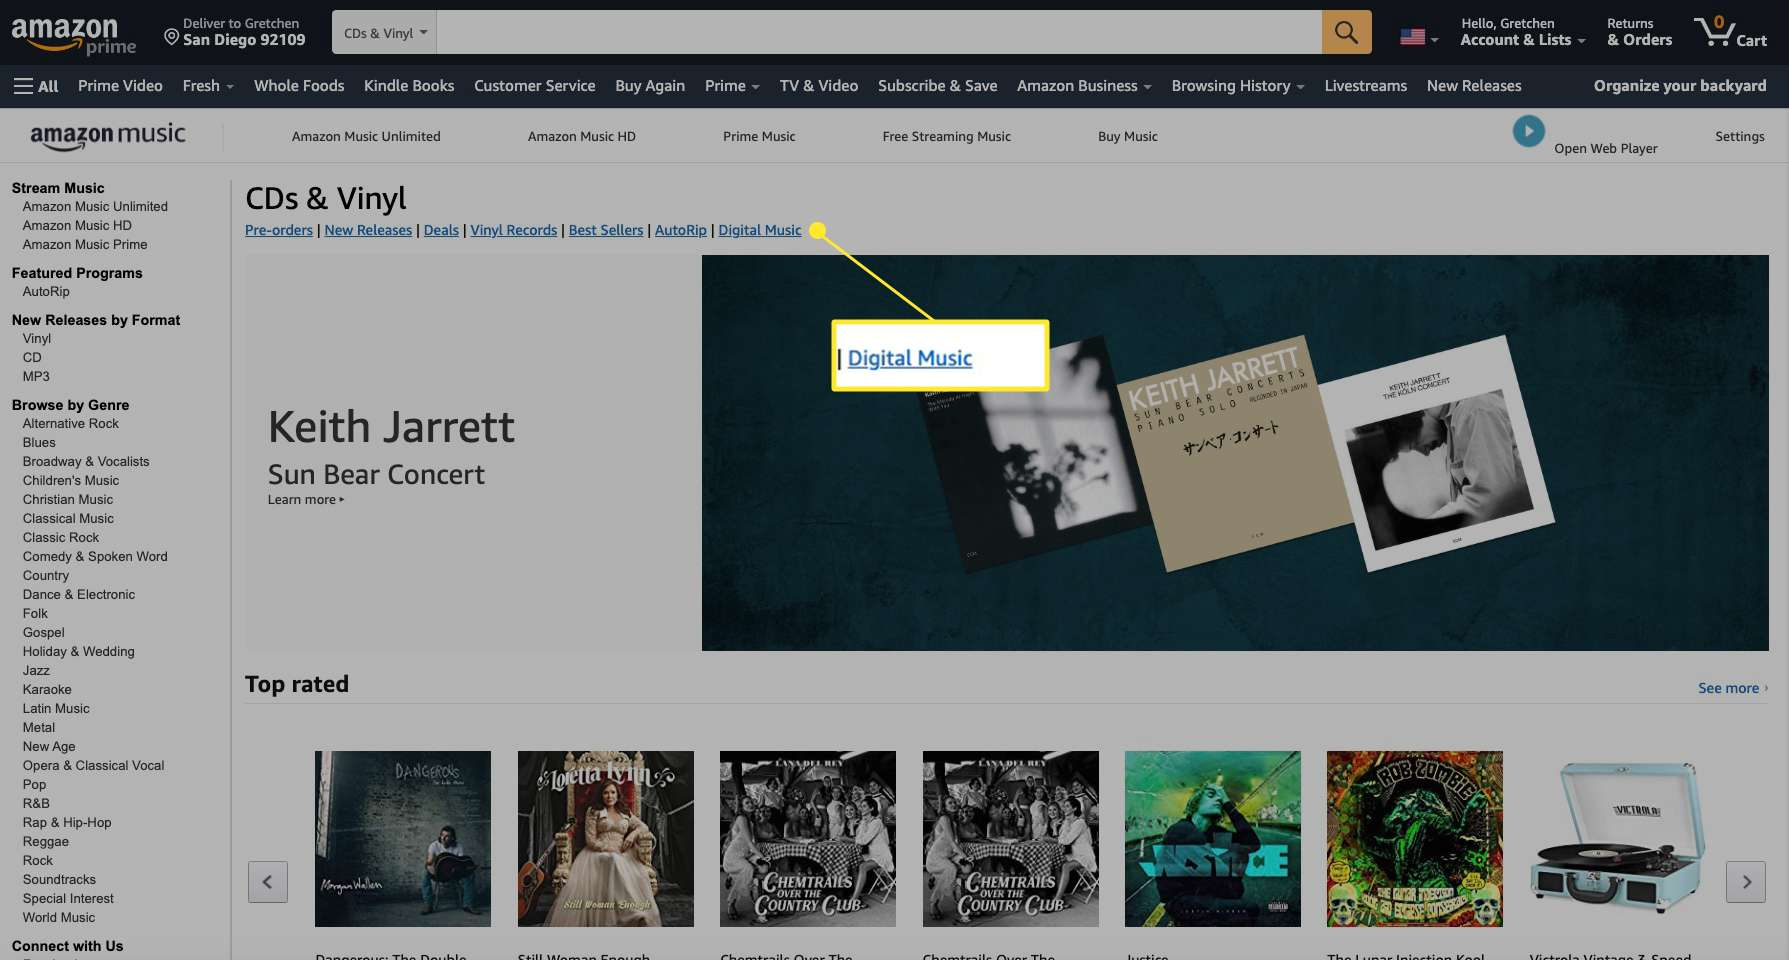 Amazon Music website with Digital Music highlighted